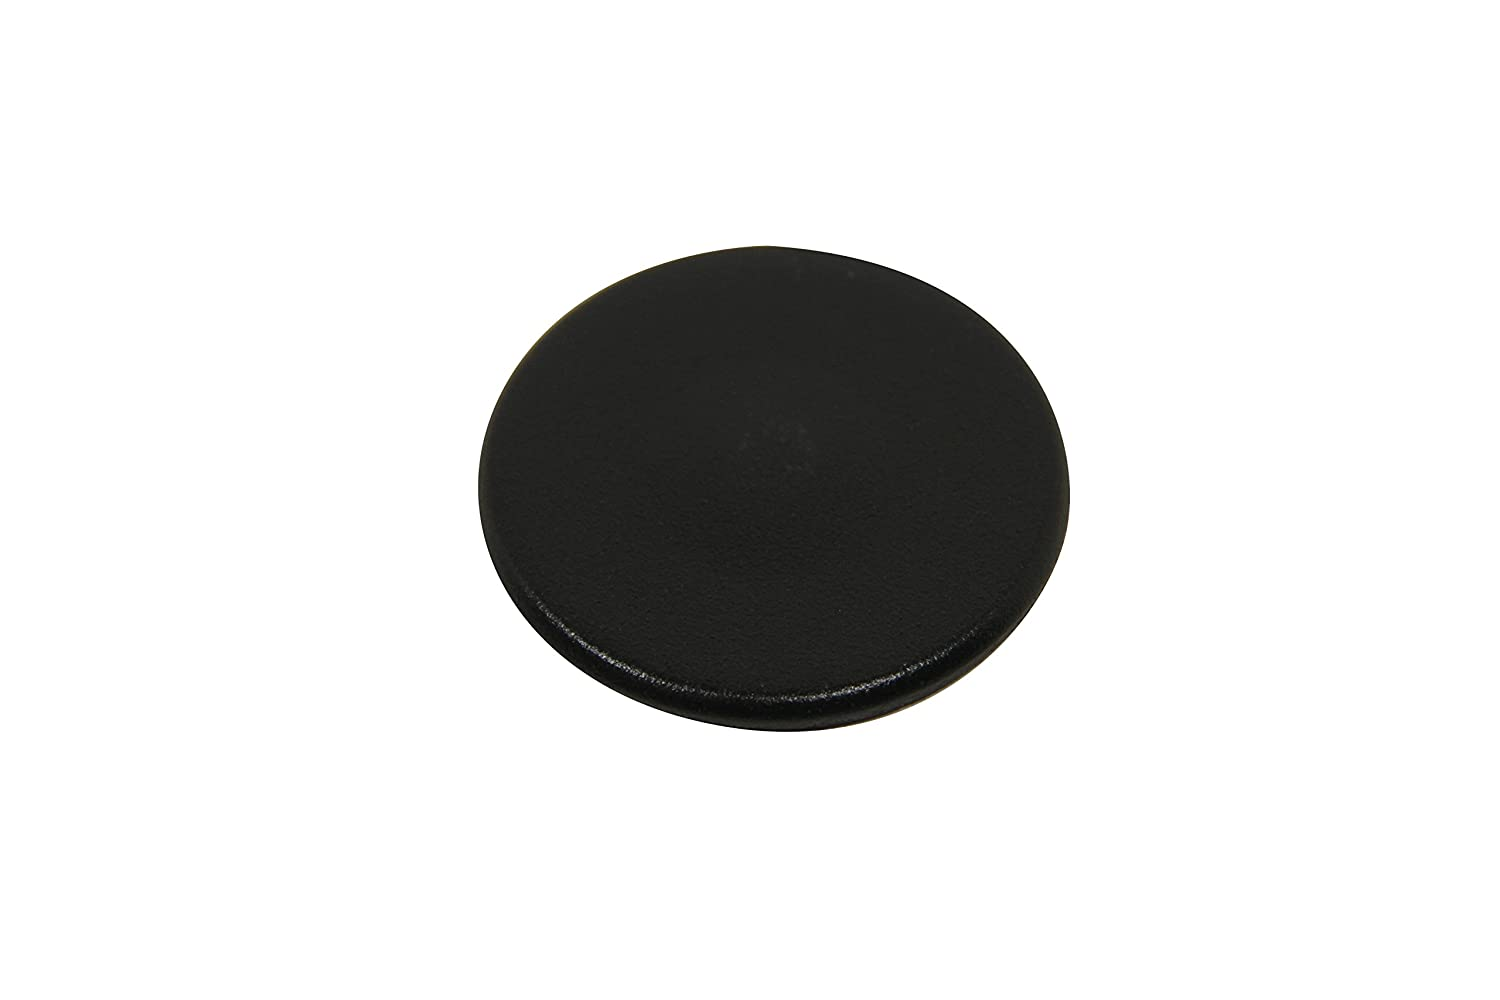 Hotpoint Ariston Cannon Hotpoint Indesit Hob Small Burner Cap. Genuine part number C00064918 C00064918 New 2016